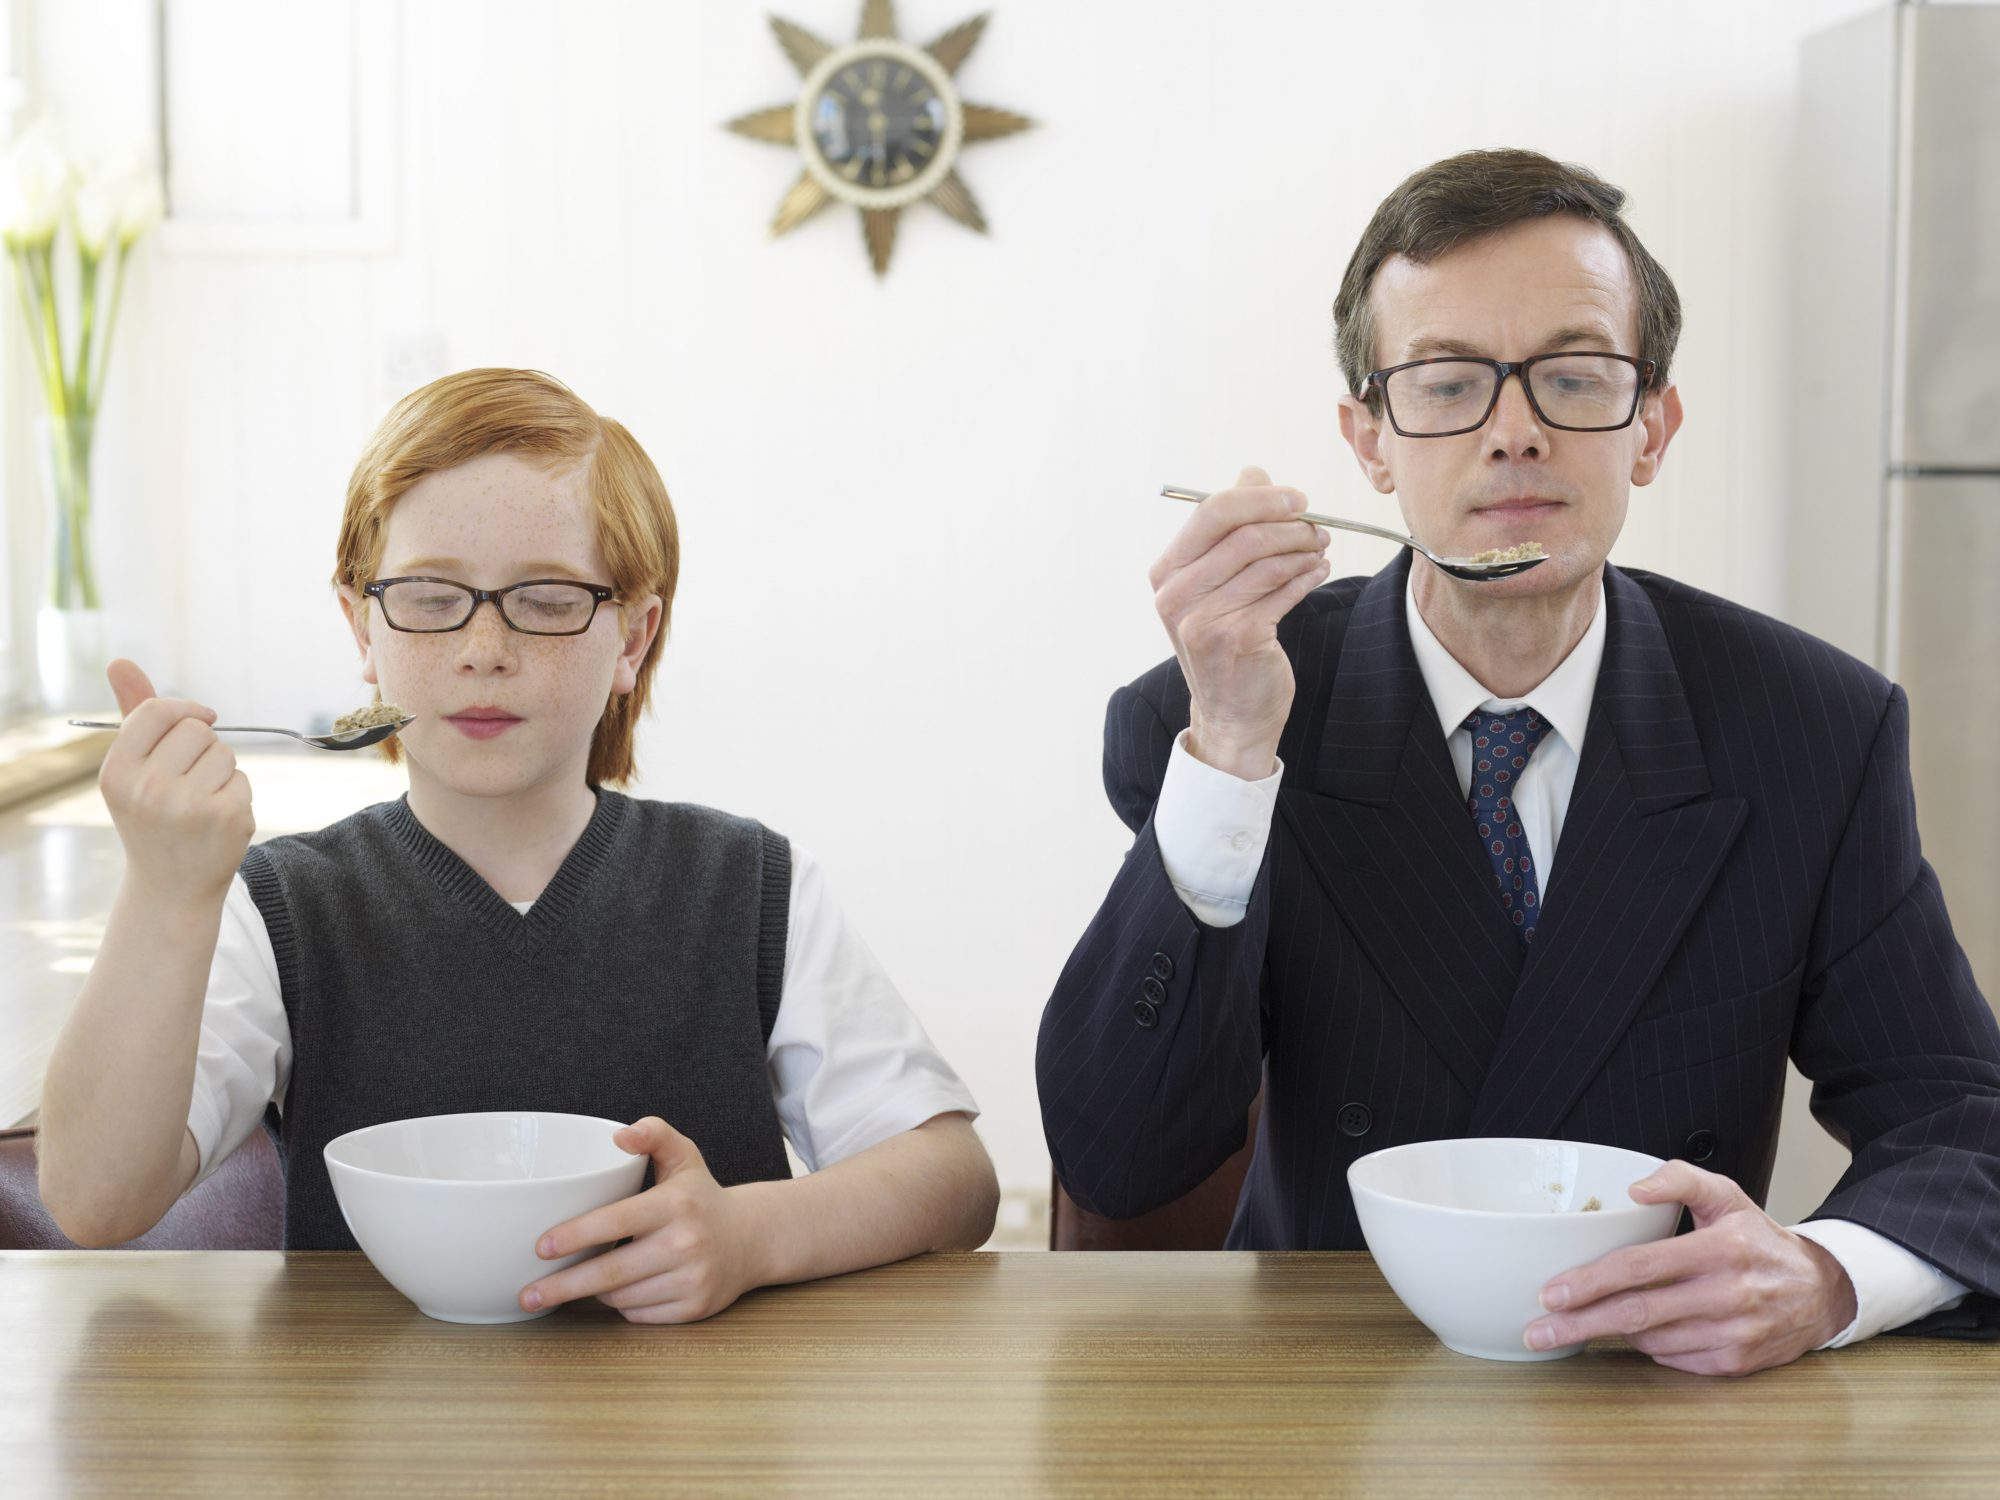 Father Son Eating Cereal